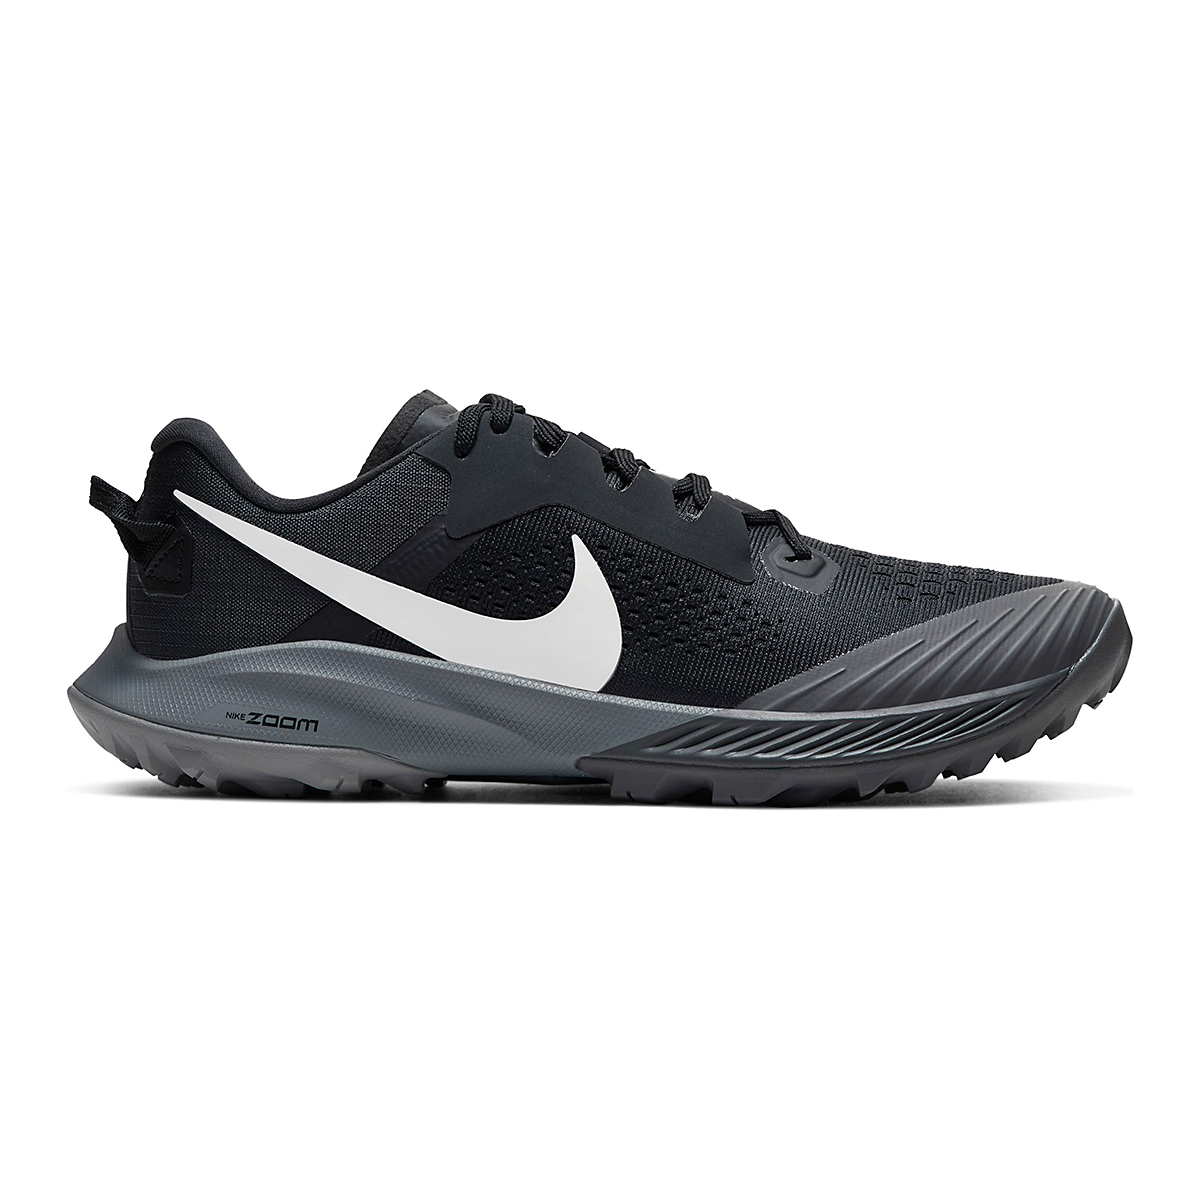 Women's Nike Air Zoom Terra Kiger 6 Trail Running Shoe - Color: Off Noir/Black/Iron Grey/Spruce Aura - Size: 5 - Width: Regular, Off Noir/Black/Iron Grey/Spruce Aura, large, image 1